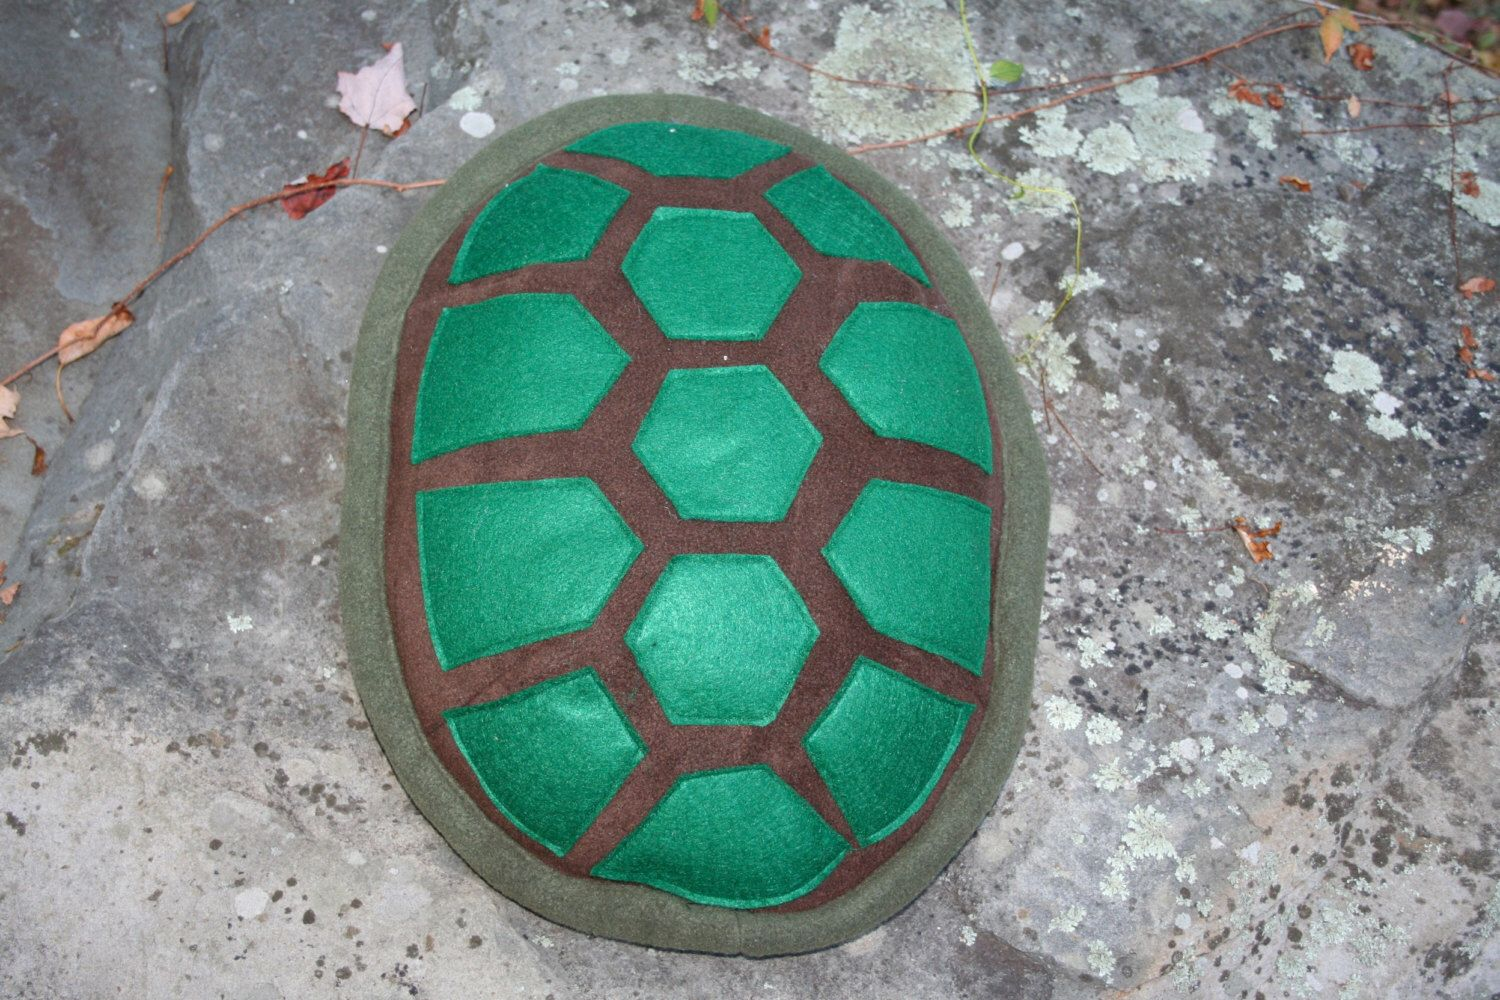 Turtle Shell Costume for Bigger Kids and Adults by NaturallyCraftyShop on Etsy https://www.etsy.com/listing/123076819/turtle-shell-costume-for-bigger-kids-and